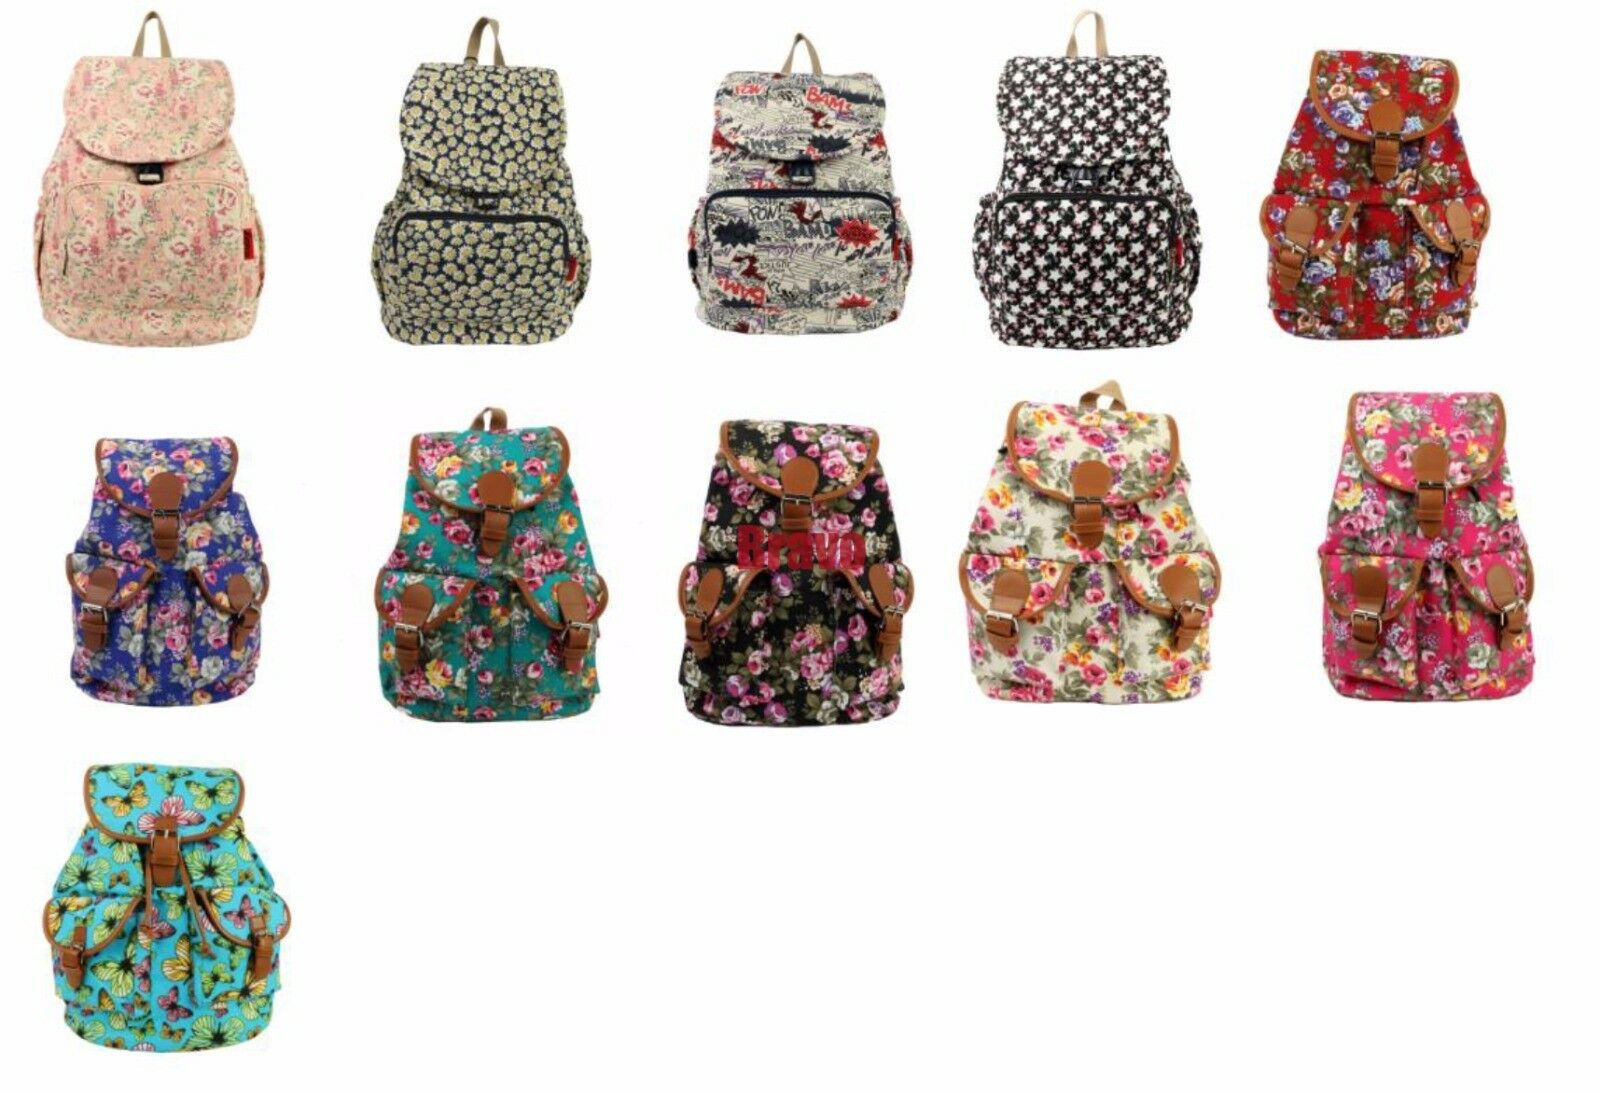 Women's Canvas Satchel Without beating about the bush Backpack School Rucksack Bags Travel Fashion NEW